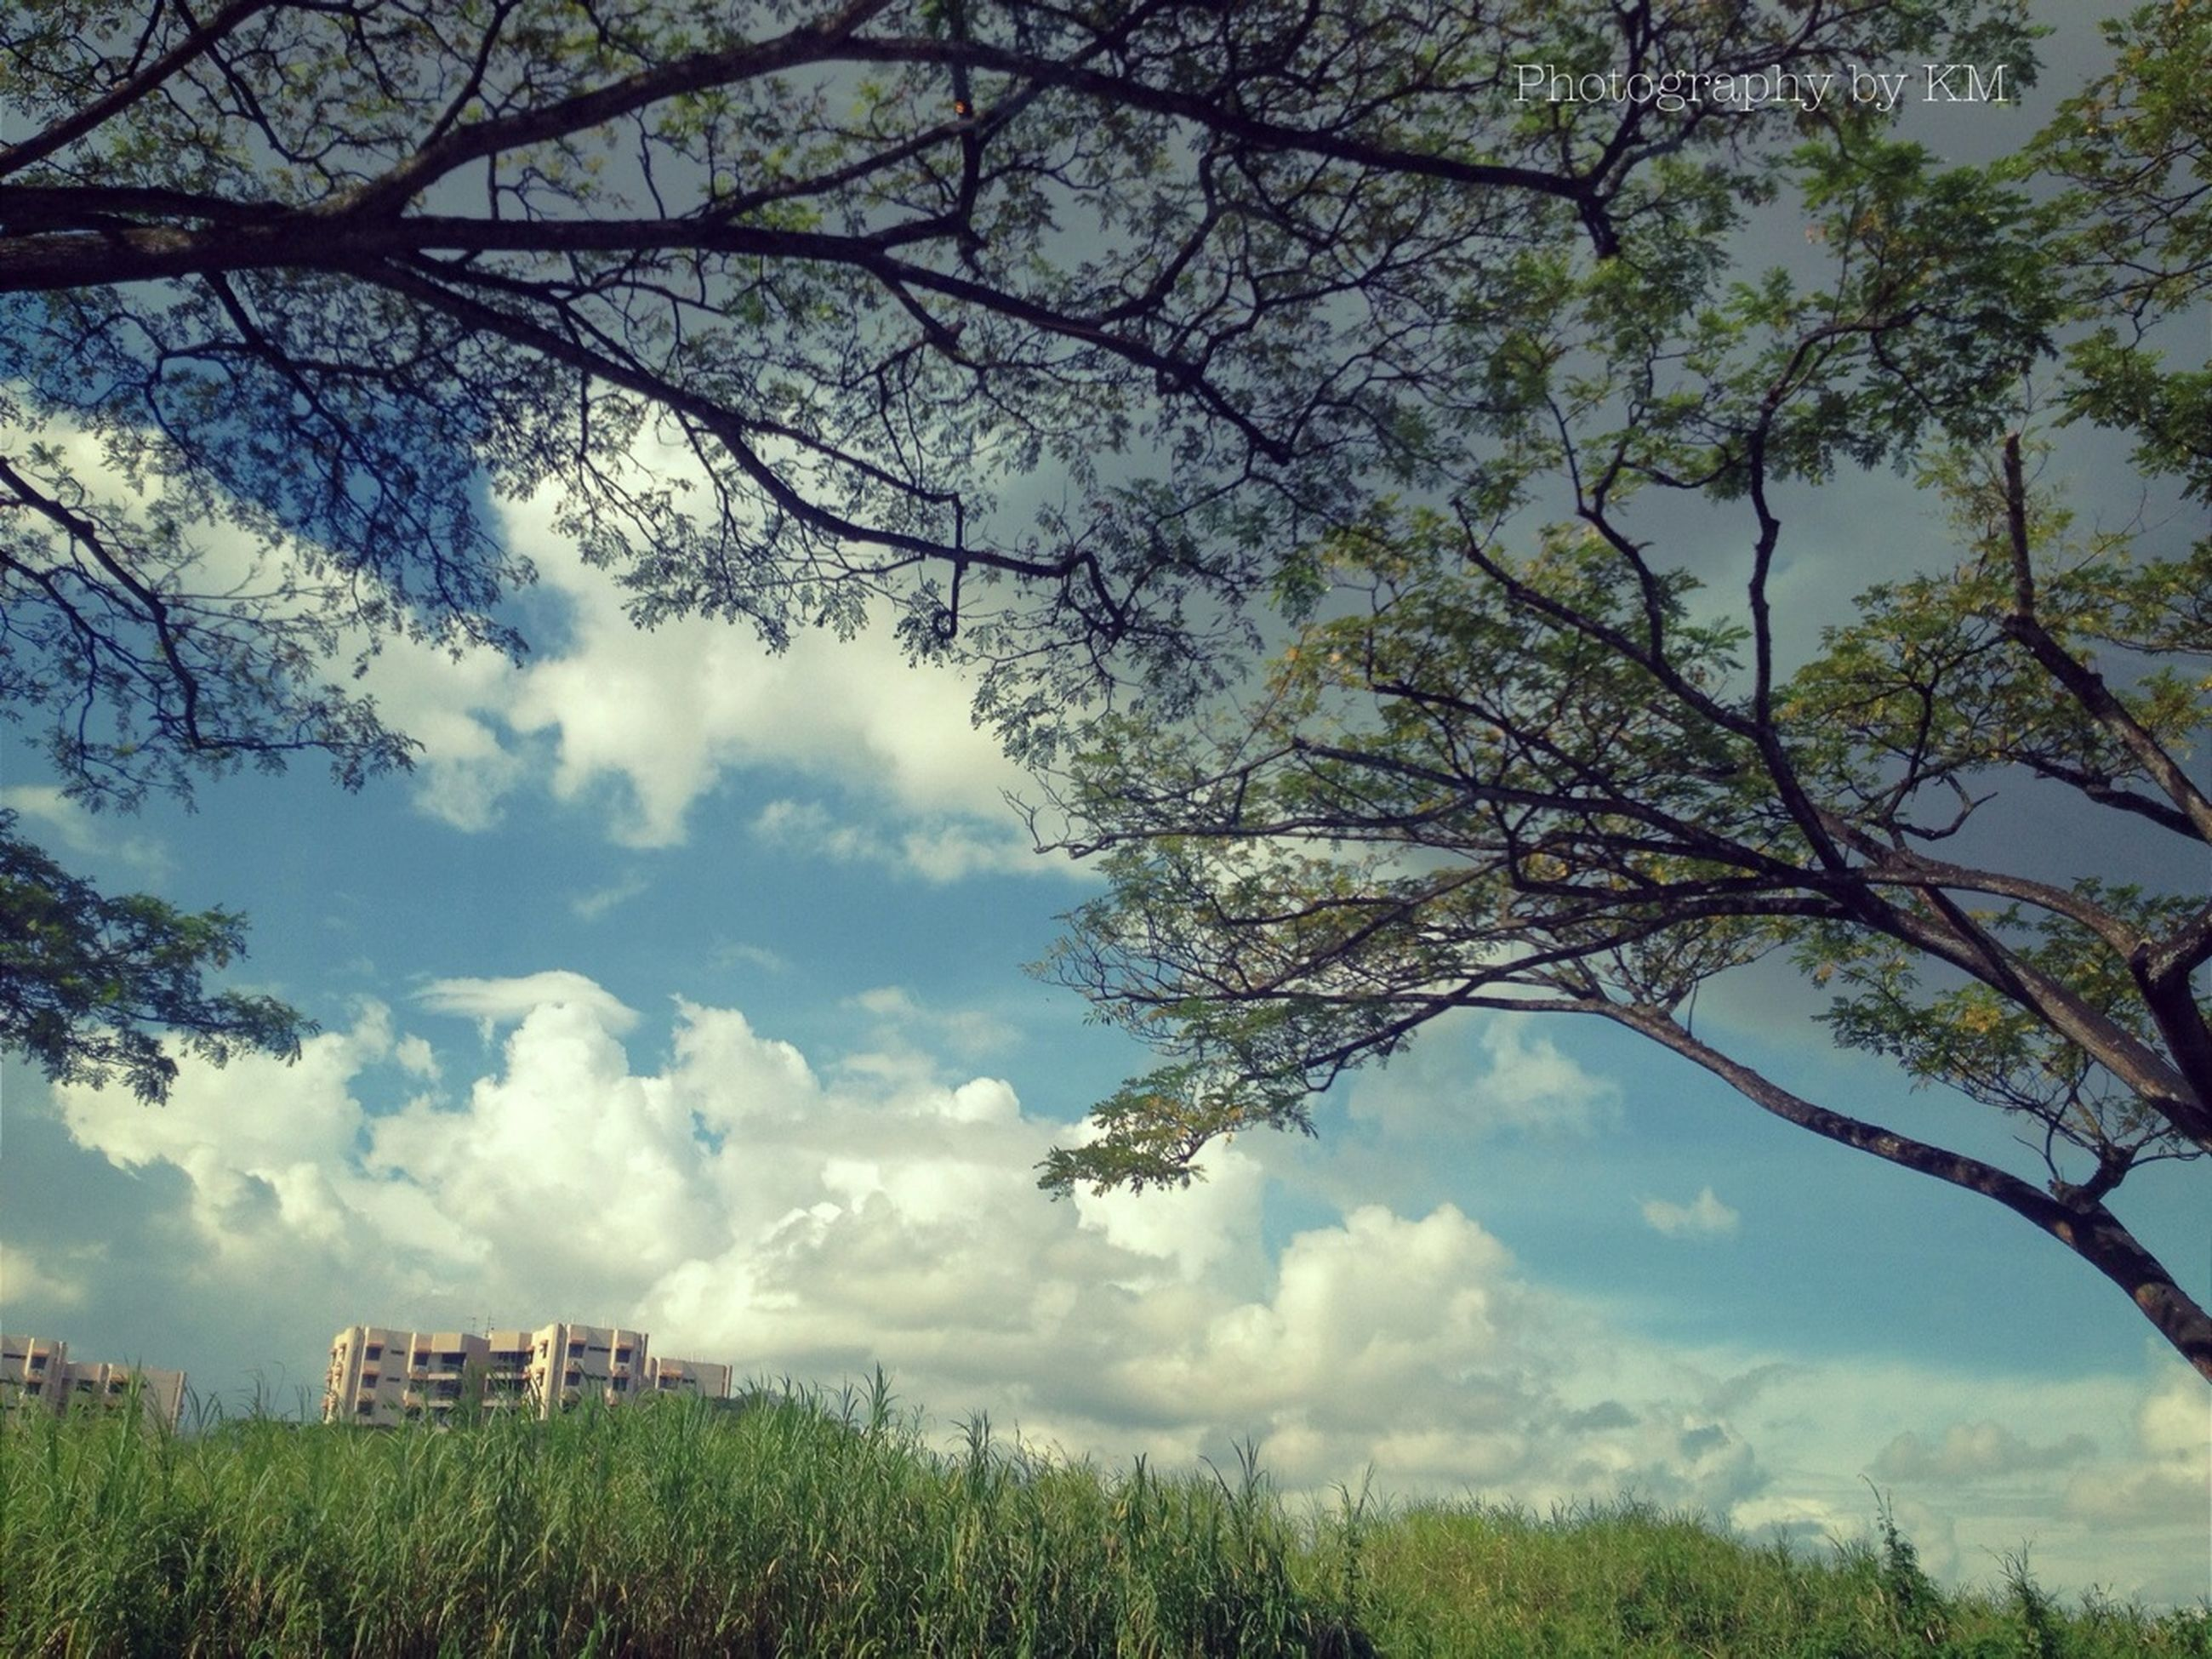 tree, sky, cloud - sky, building exterior, built structure, architecture, grass, cloudy, branch, field, nature, growth, cloud, tranquility, beauty in nature, bare tree, landscape, day, tranquil scene, house